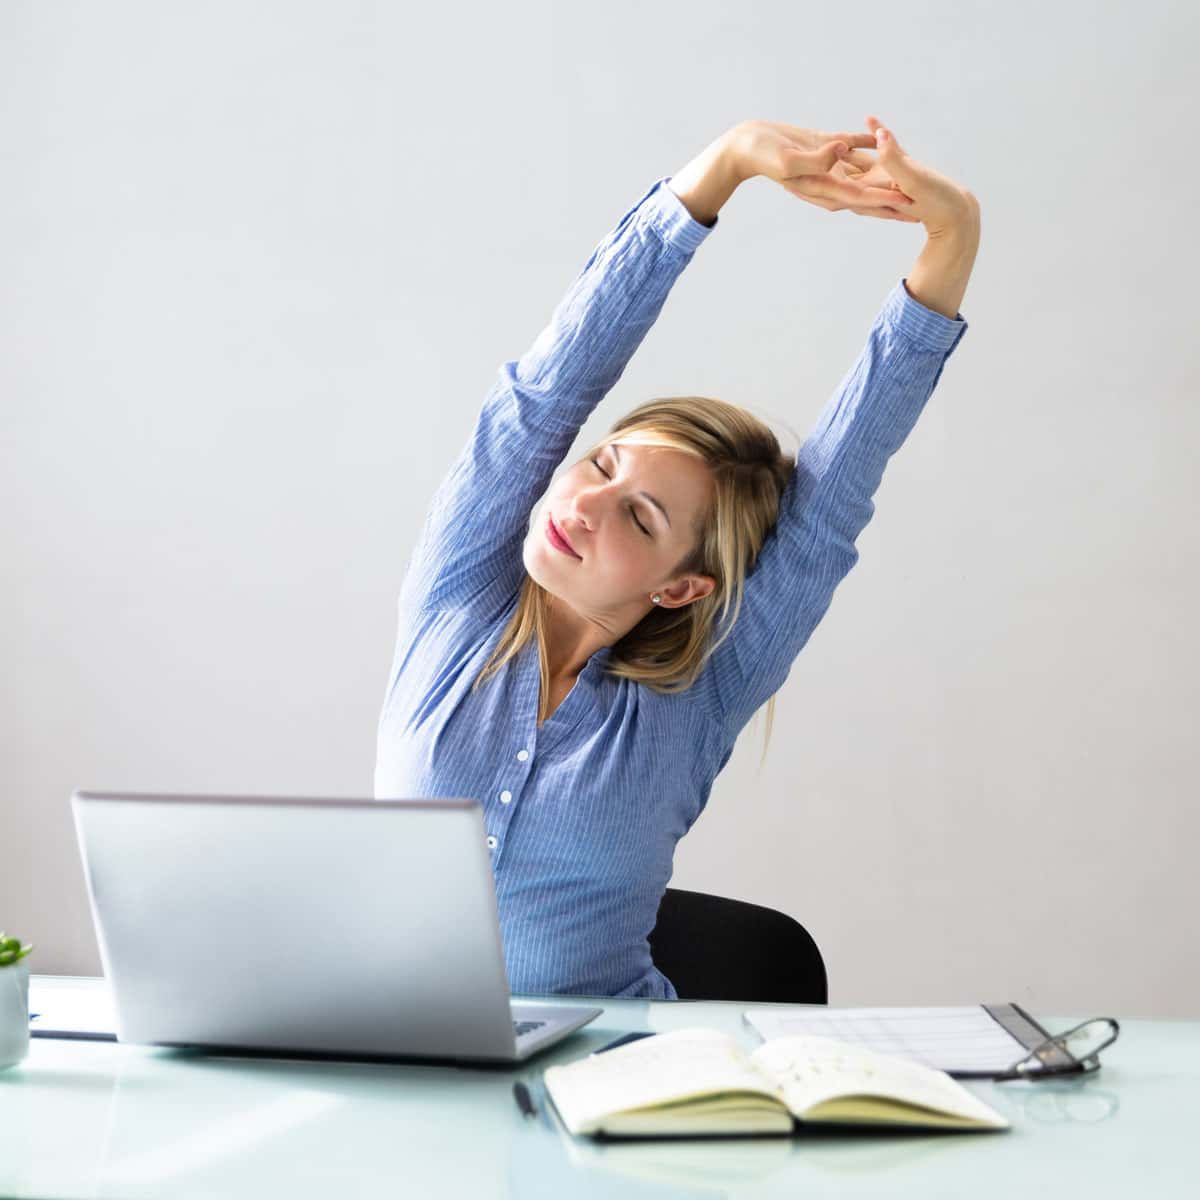 Image of someone stretching while at their desk.